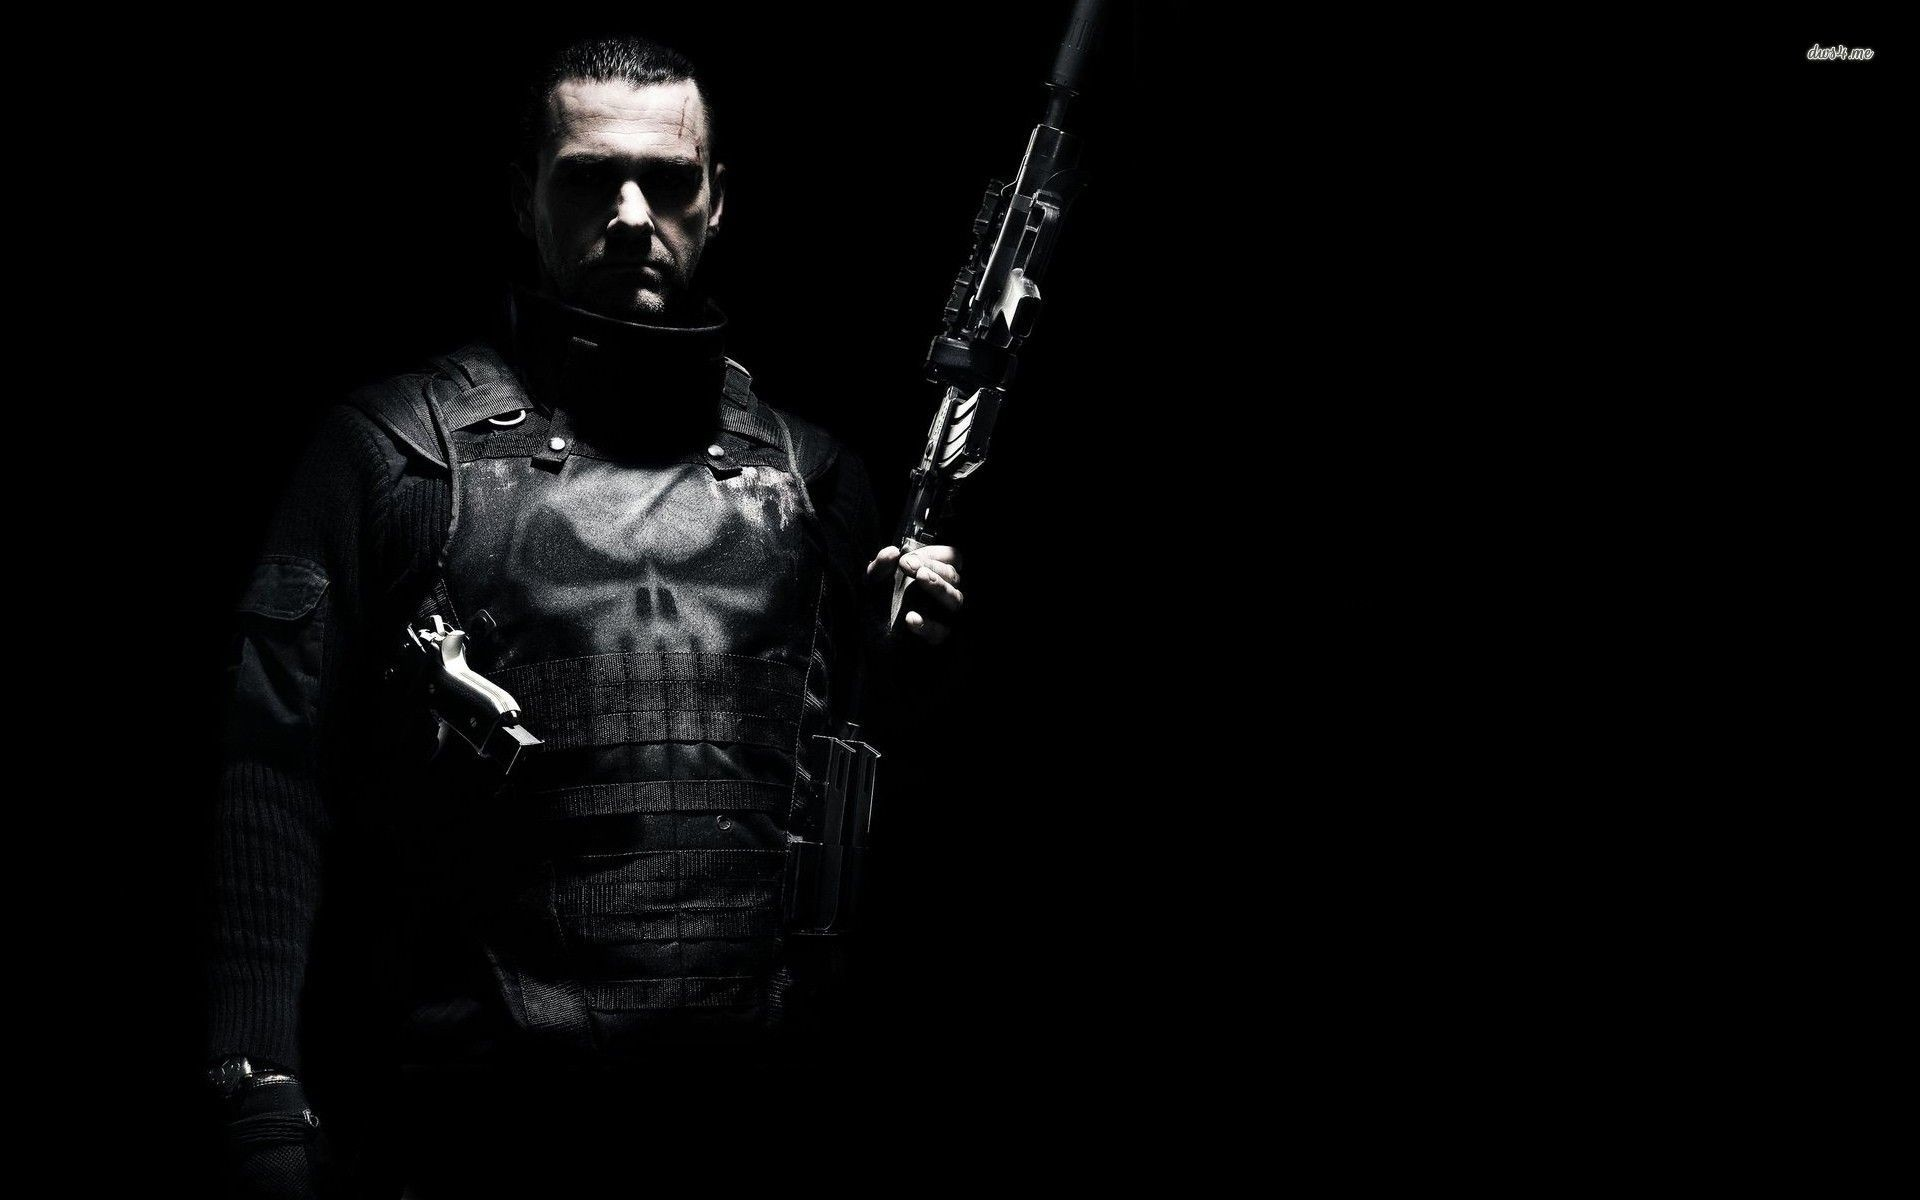 Punisher HD WallpapersBackgrounds For Free Download BsnSCB